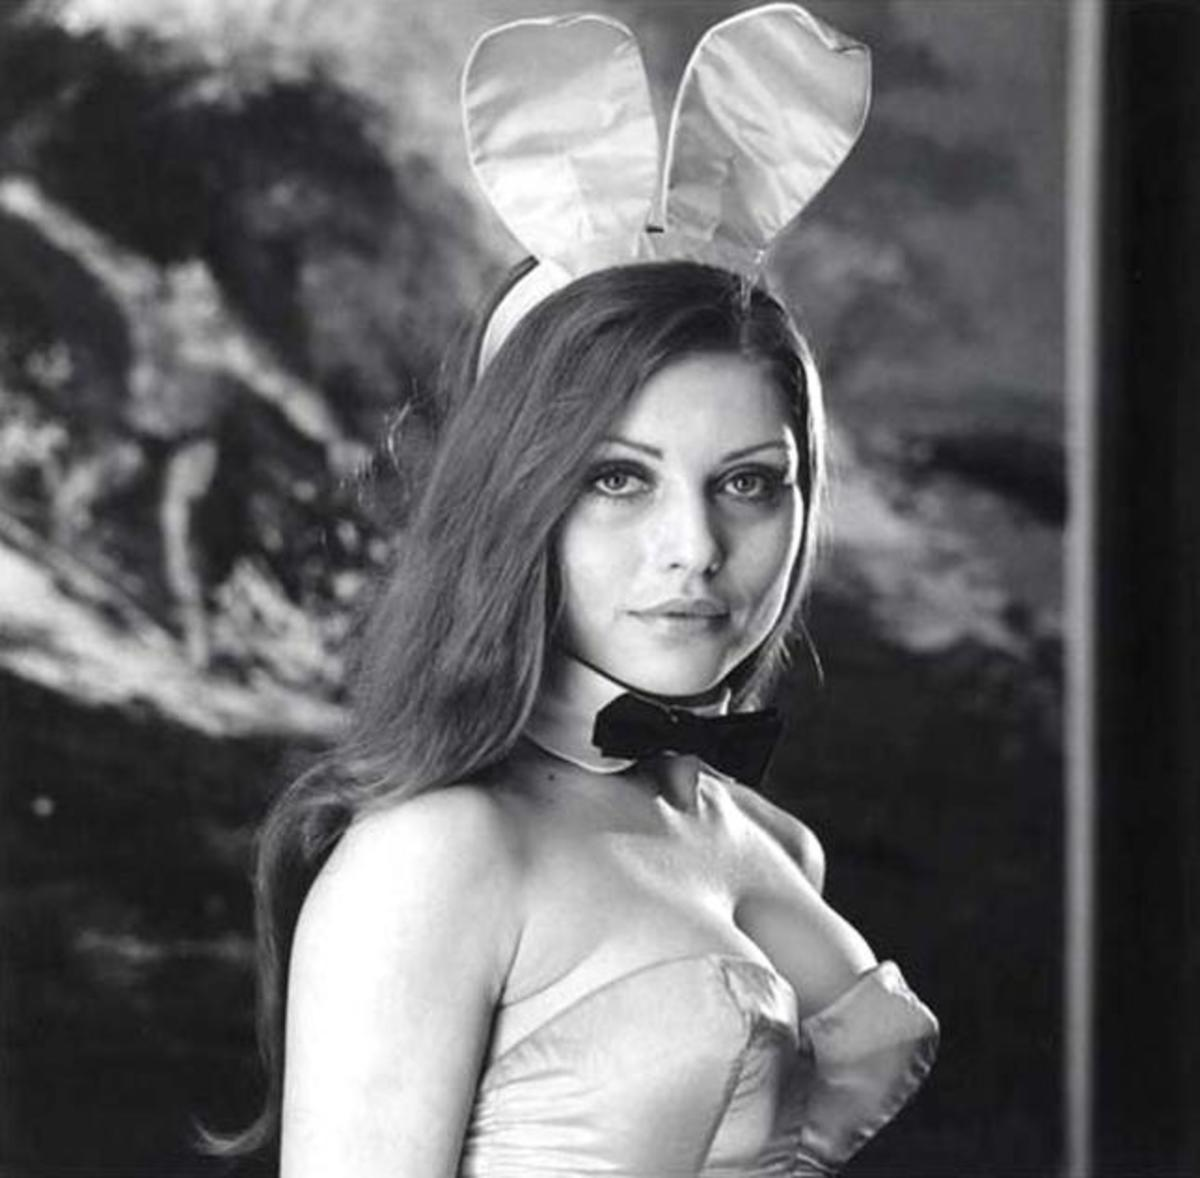 Debbie Harry's stint as a Playboy Bunny was not as glamorous as you'd think.